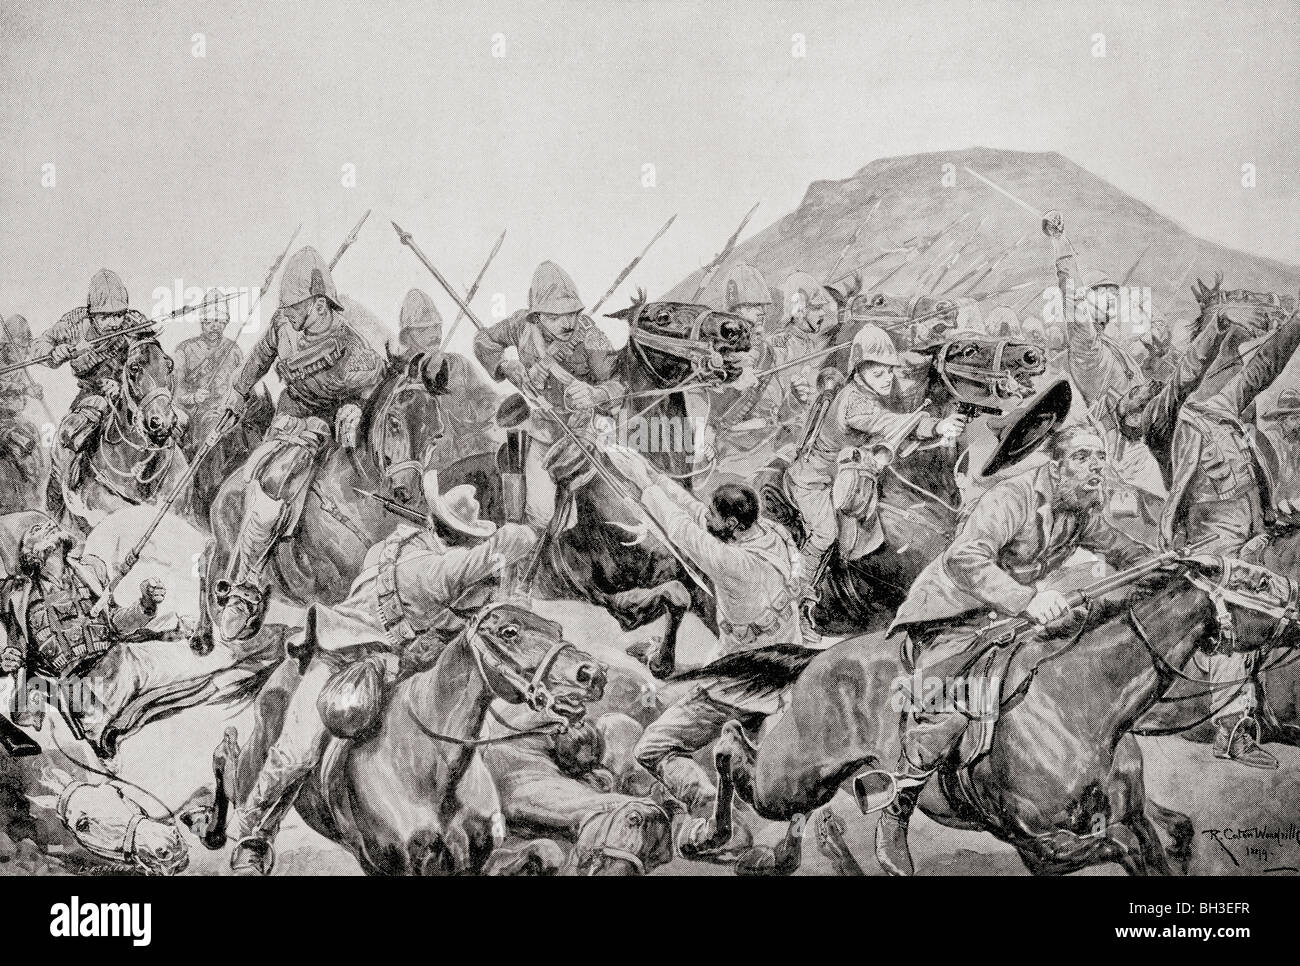 Charge of the 5th Lancers at The Battle of Elandslaagte, 21 October 1899, during the Second Boer War. - Stock Image